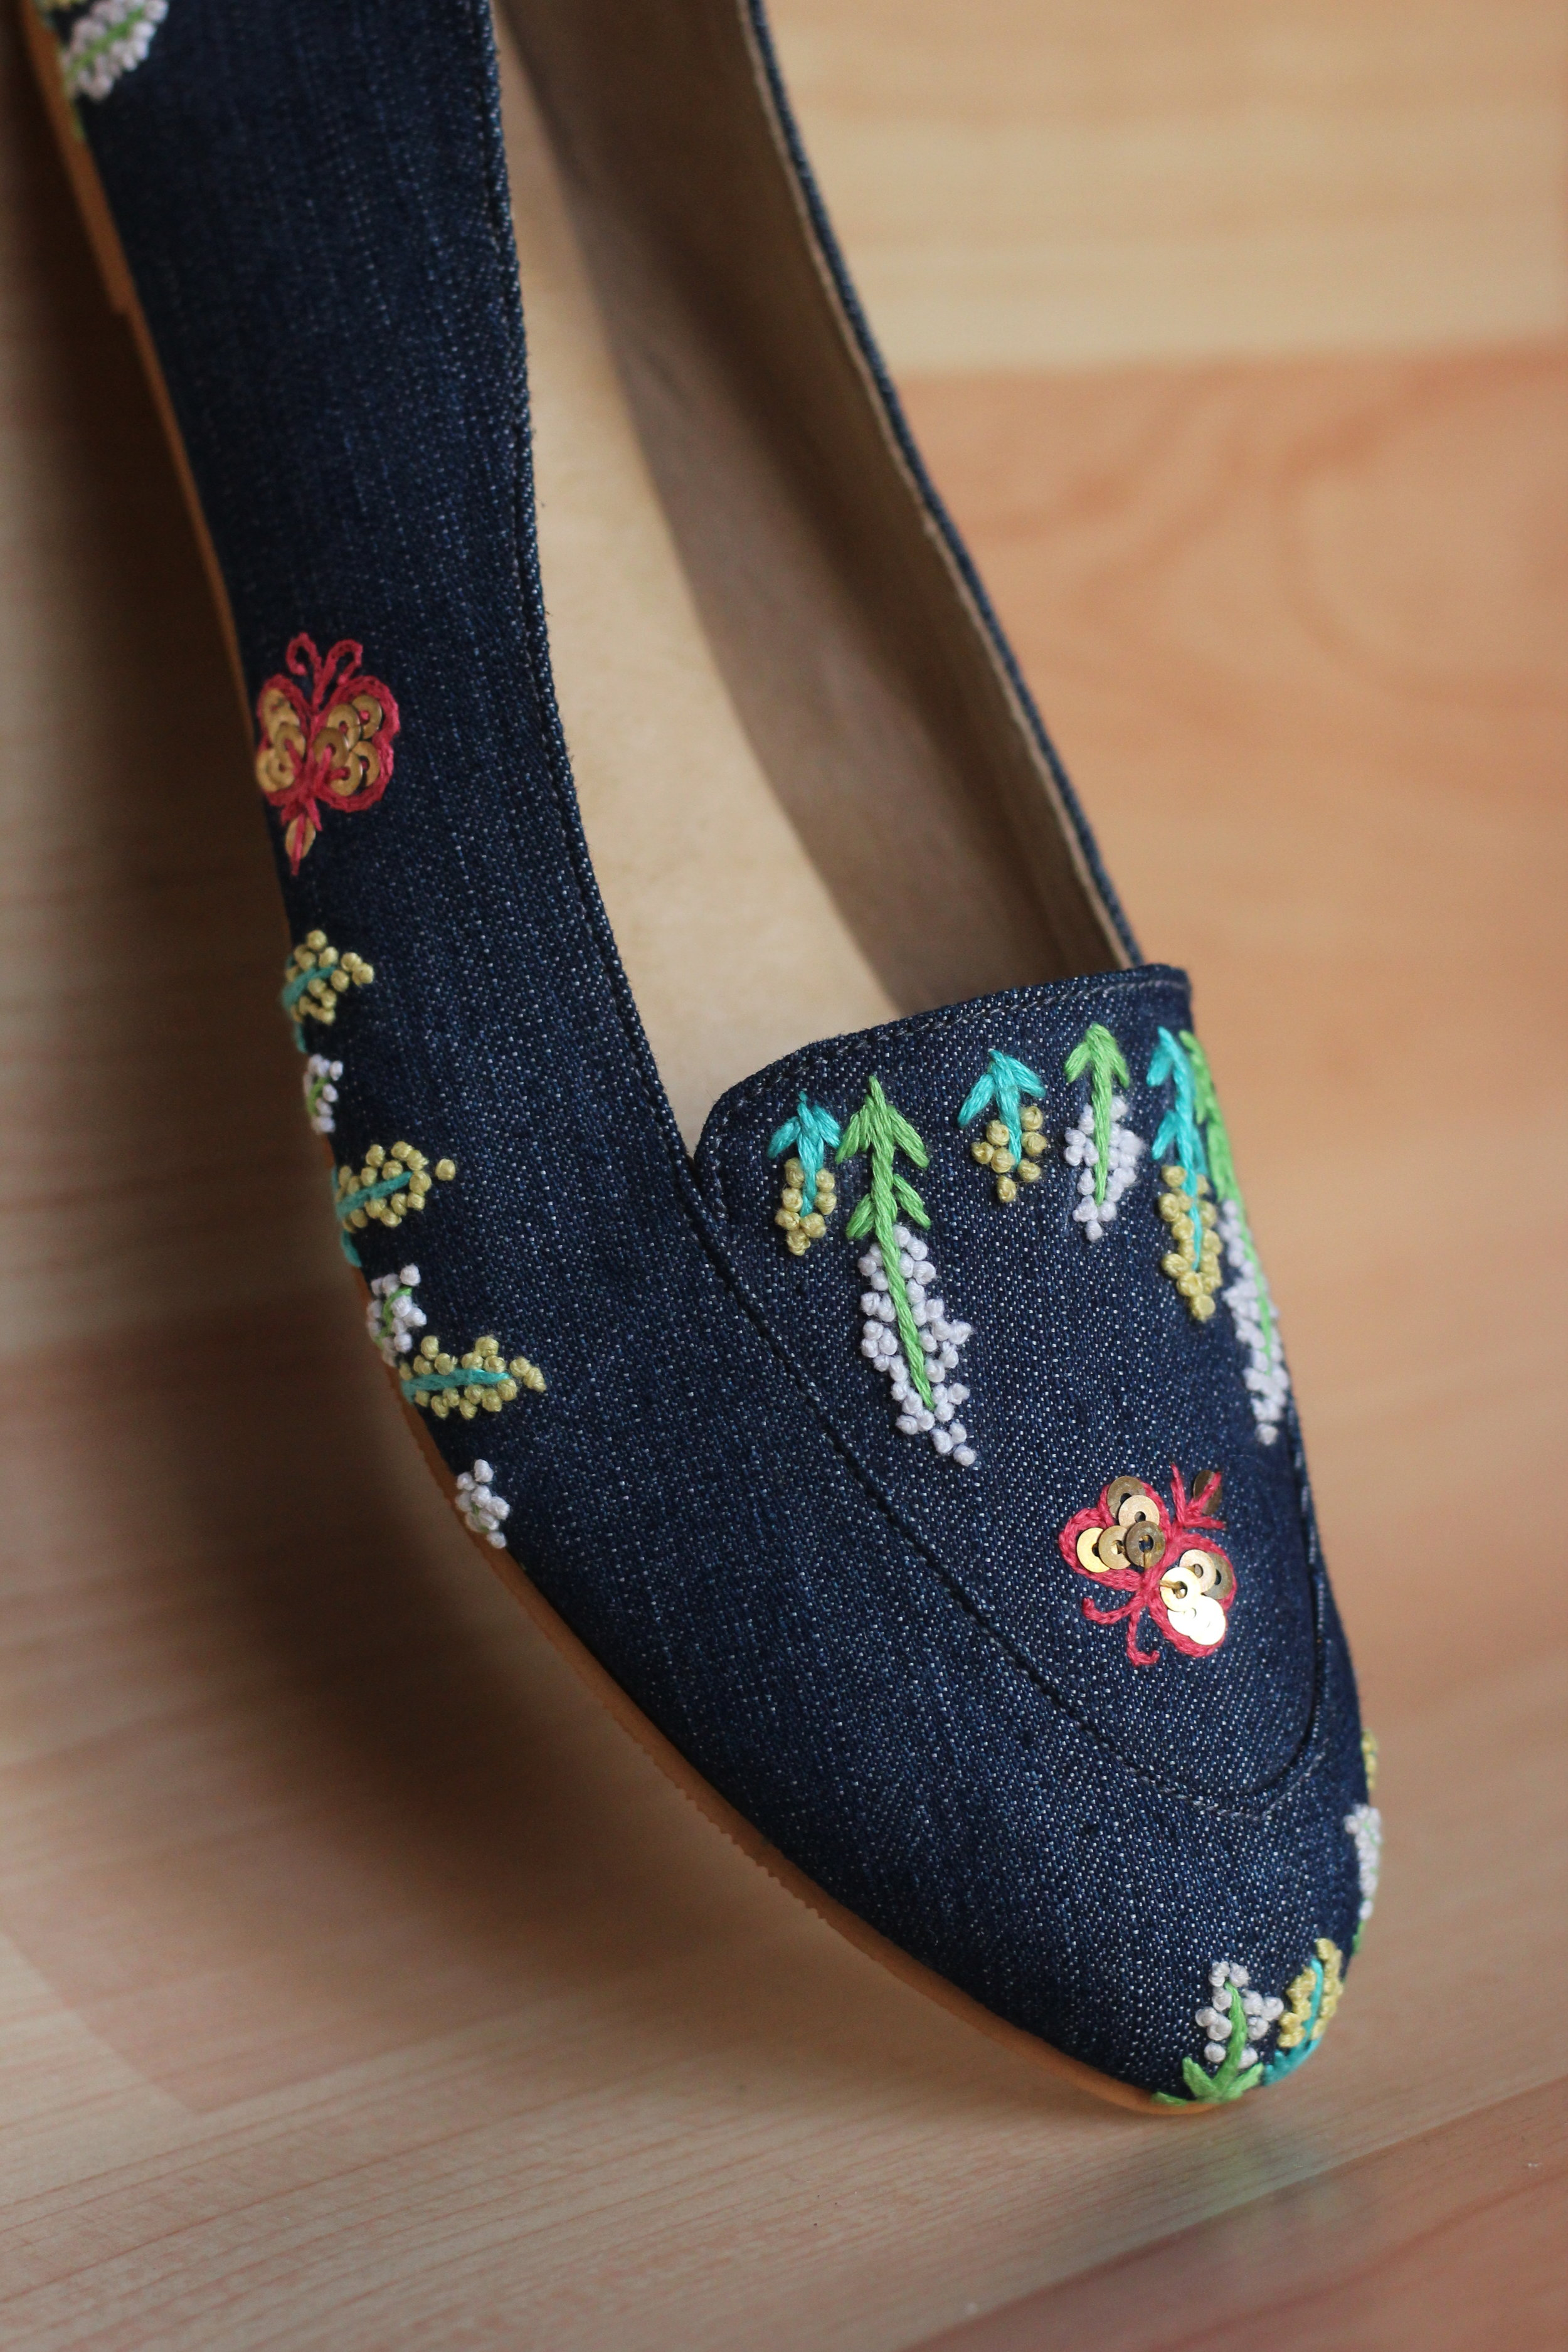 FLUTTER - The butterfly effect on these shoes will lead to series of compliments fluttering your way!